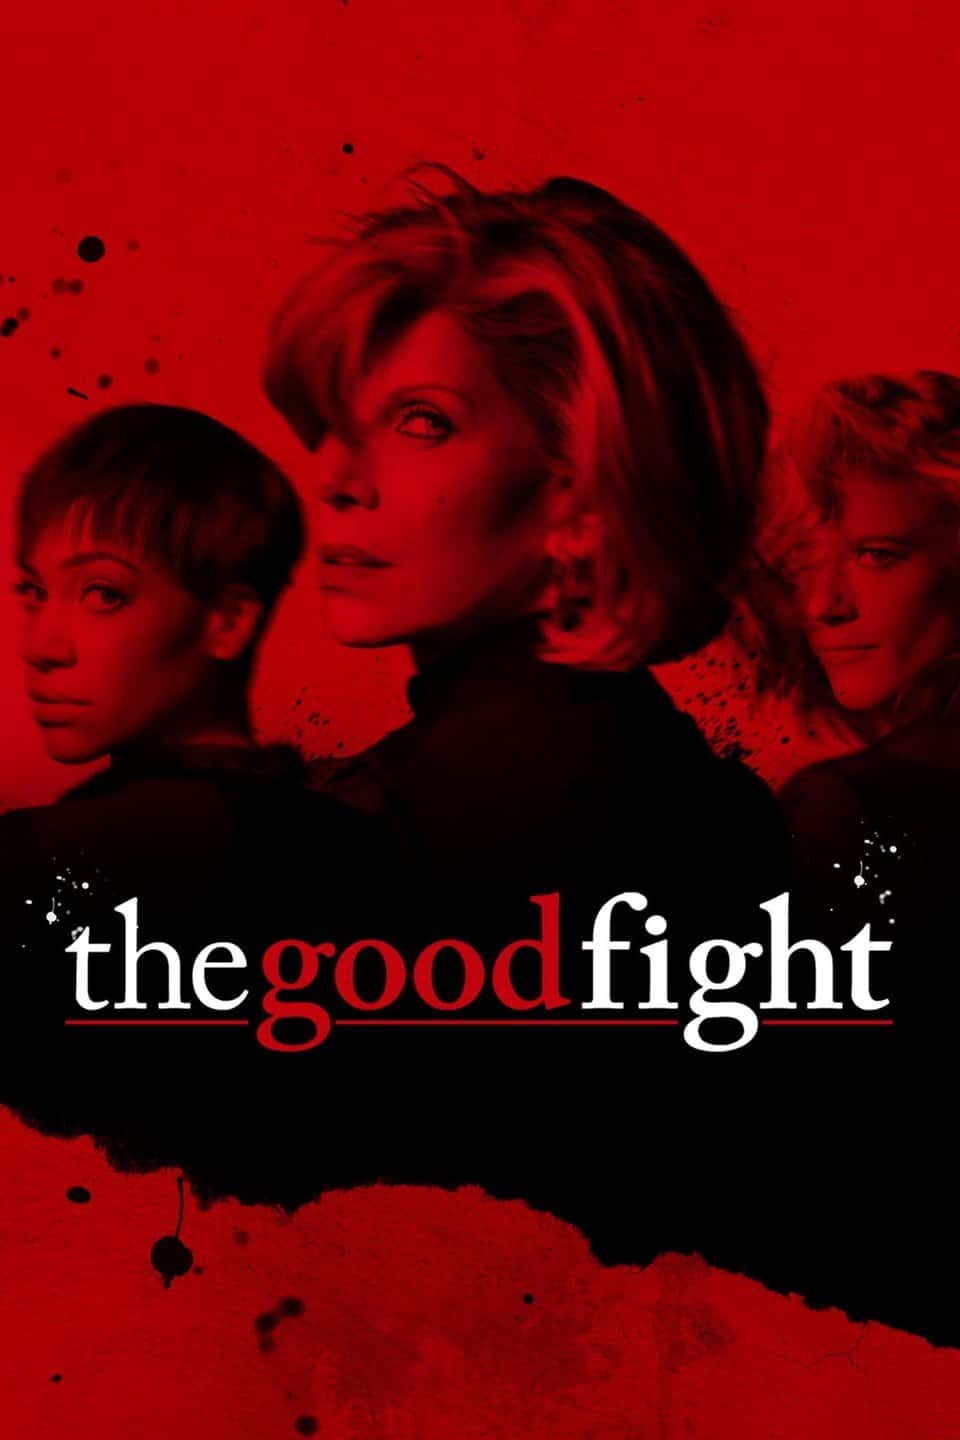 The Good Fight, 2017